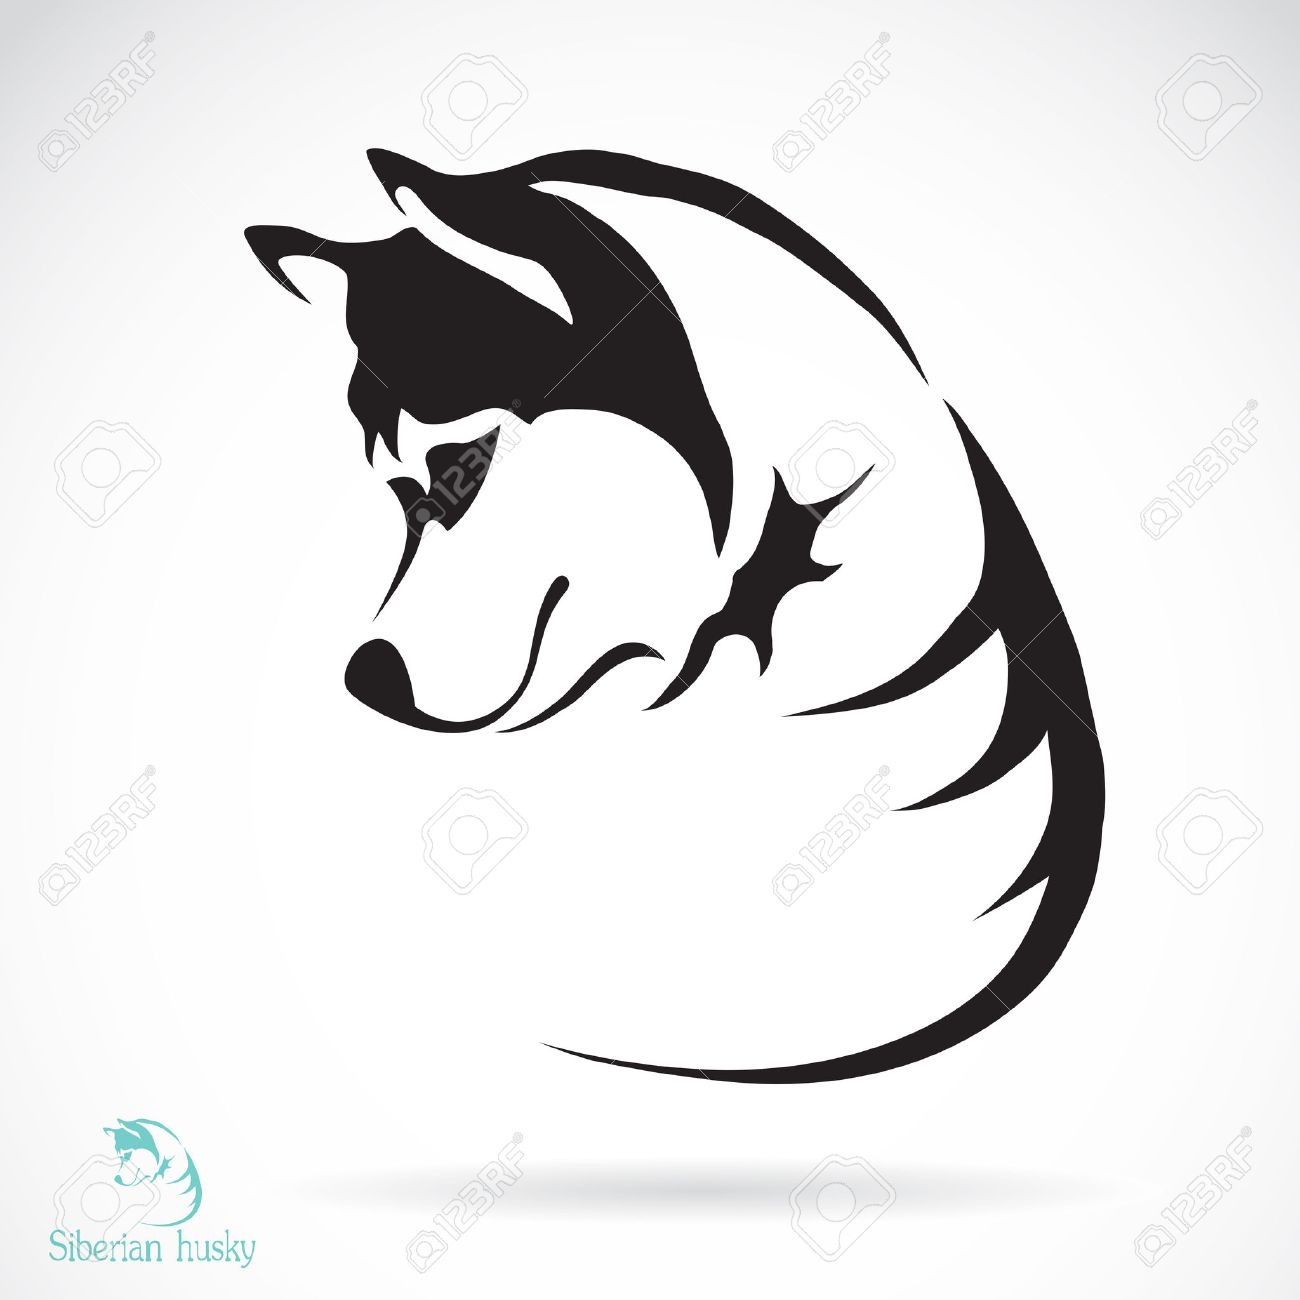 vector image of a dog siberian husky on white background royalty